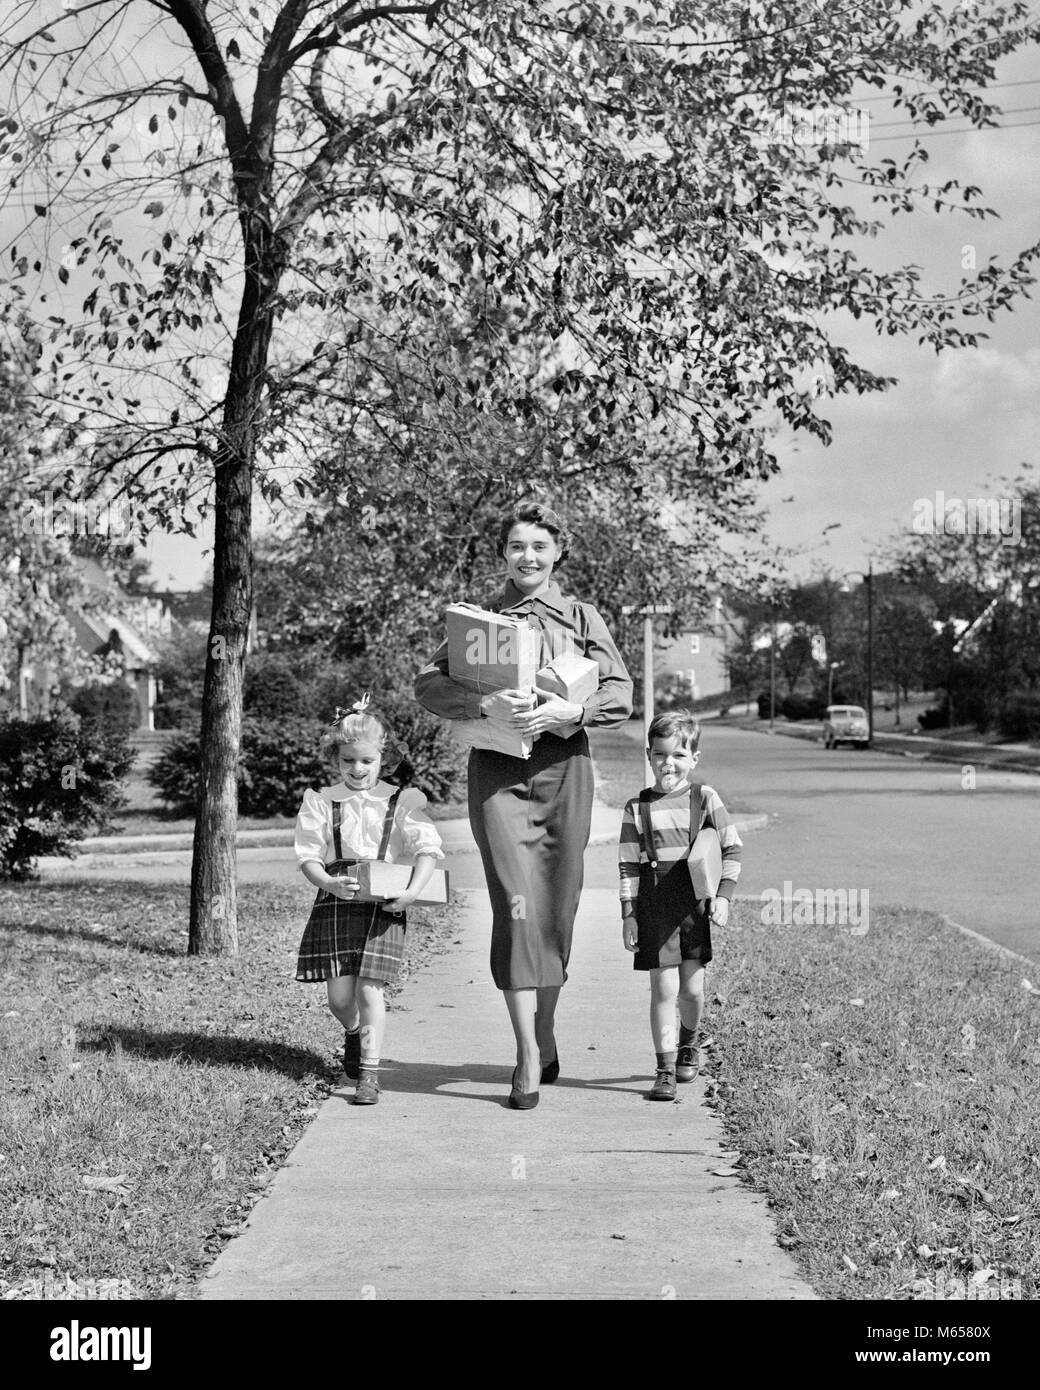 1950s MOTHER TWO CHILDREN WALKING DOWN AUTUMN SUBURBAN SIDEWALK CARRYING SHOPPING PACKAGES LOOKING AT CAMERA - j2439 - Stock Image